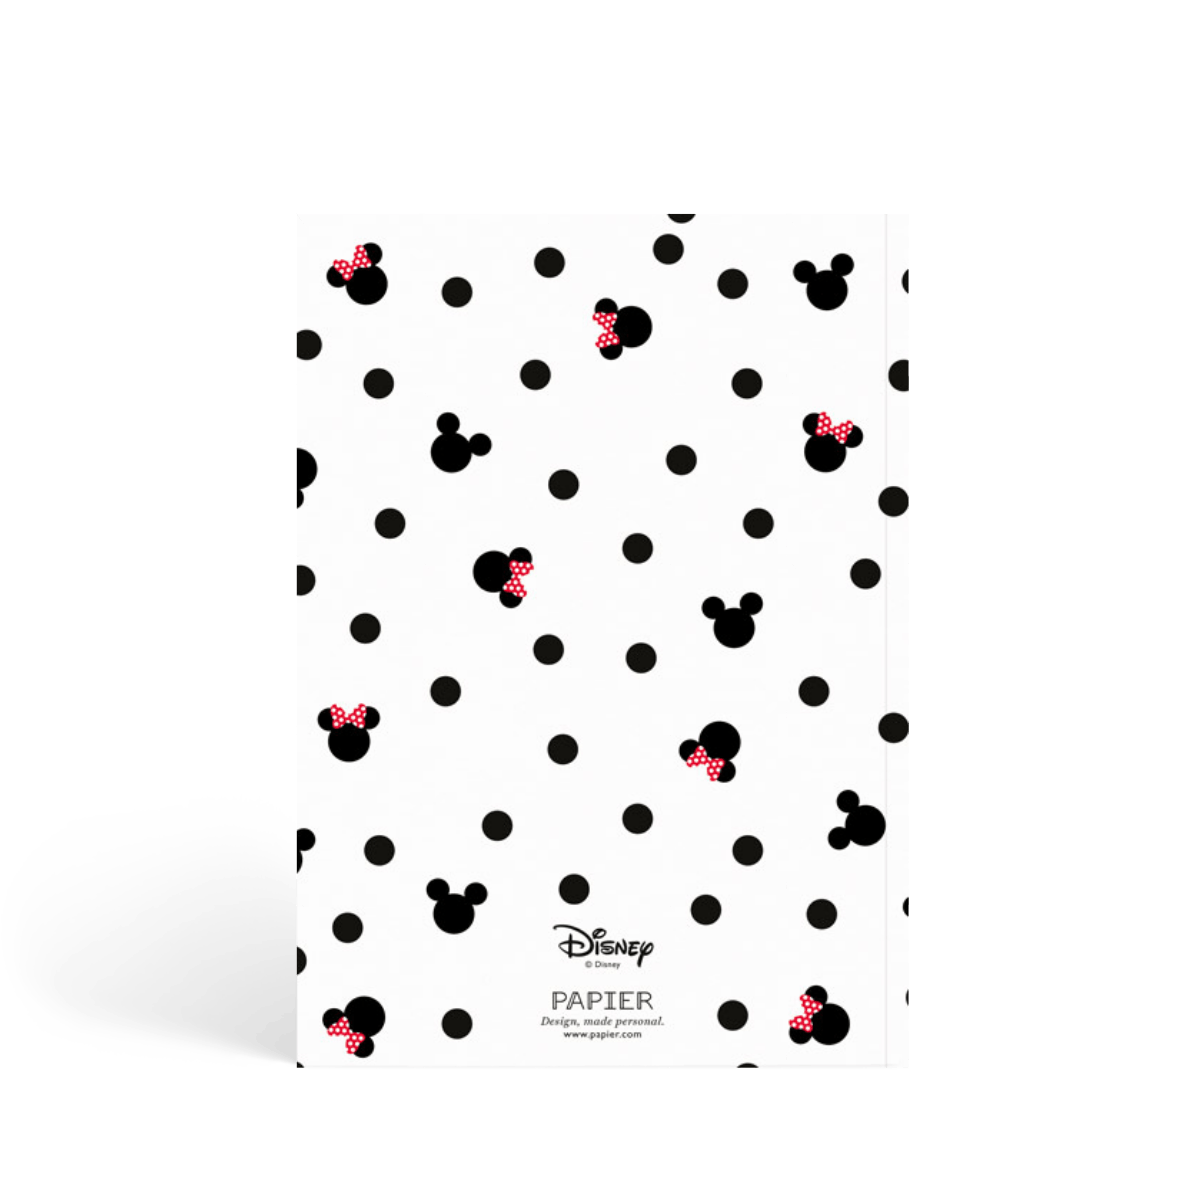 Https%3a%2f%2fwww.papier.com%2fproduct image%2f55814%2f5%2fmickey minnie mouse 13404 back 1542299824.png?ixlib=rb 1.1